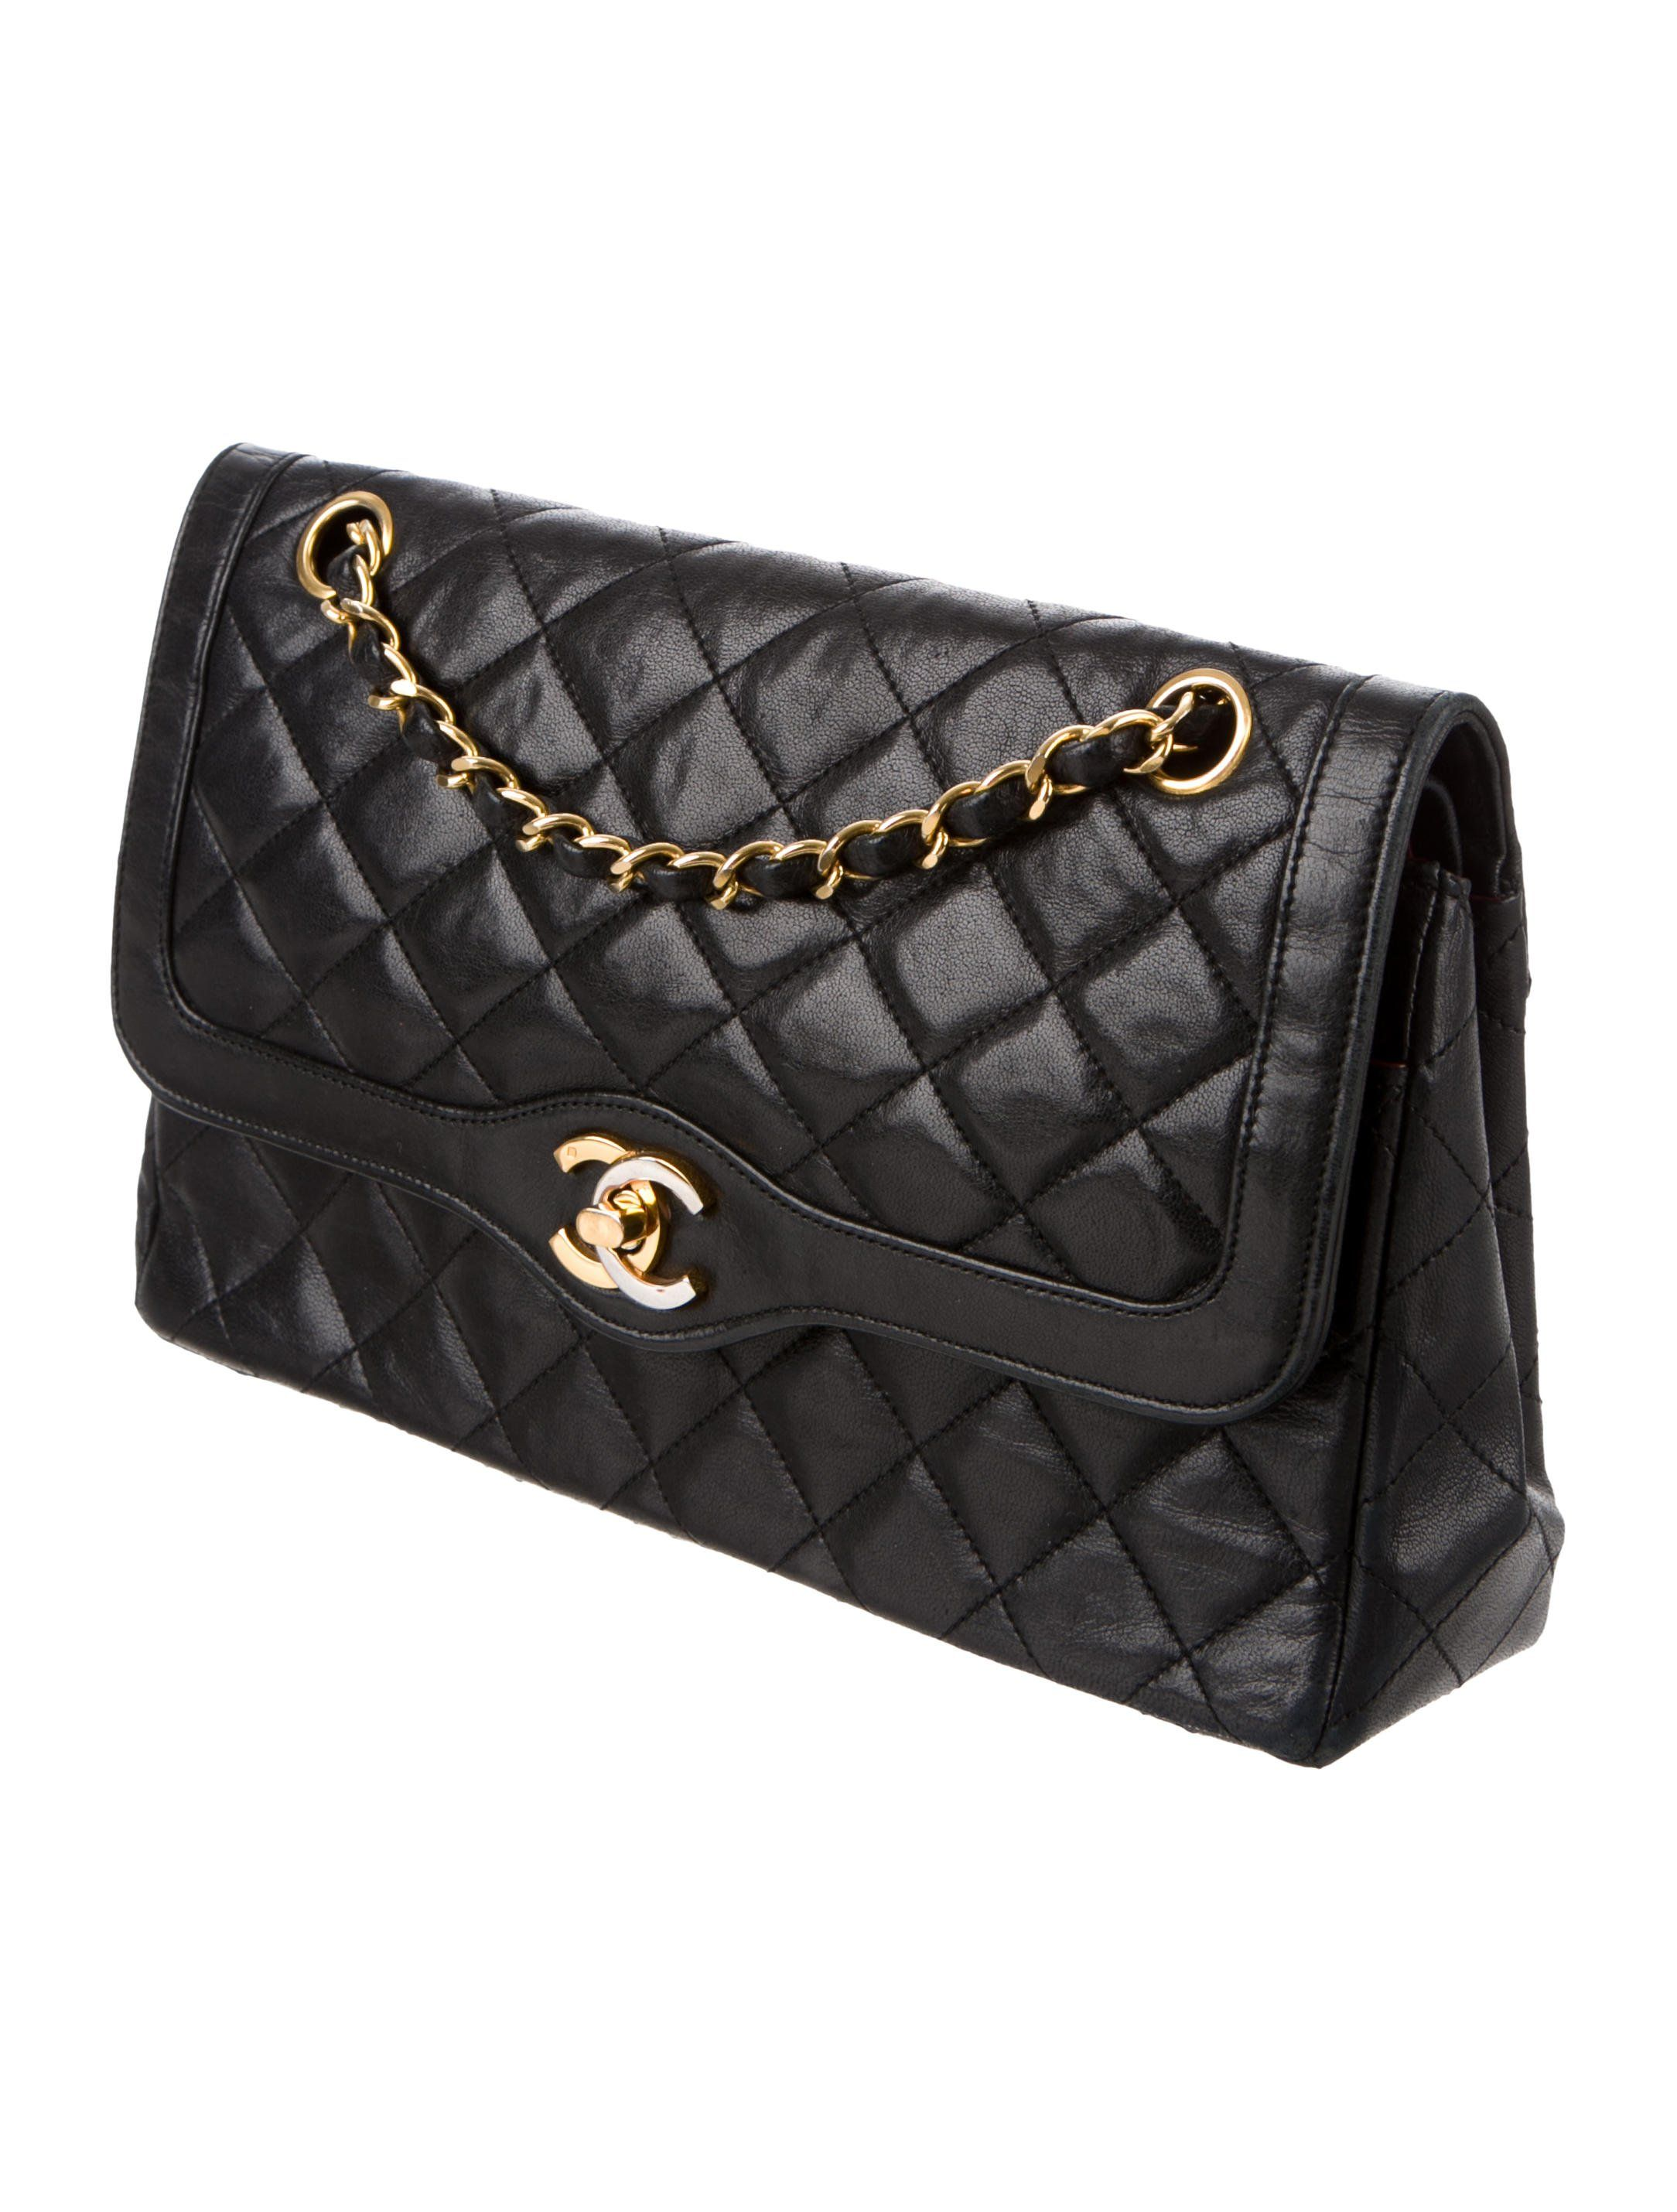 4f45b0ed328f73 Black quilted lambskin Chanel Vintage Paris Double Flap Bag with gold-tone  hardware, tonal stitching, logo at exterior, single pocket at back, single  chain-